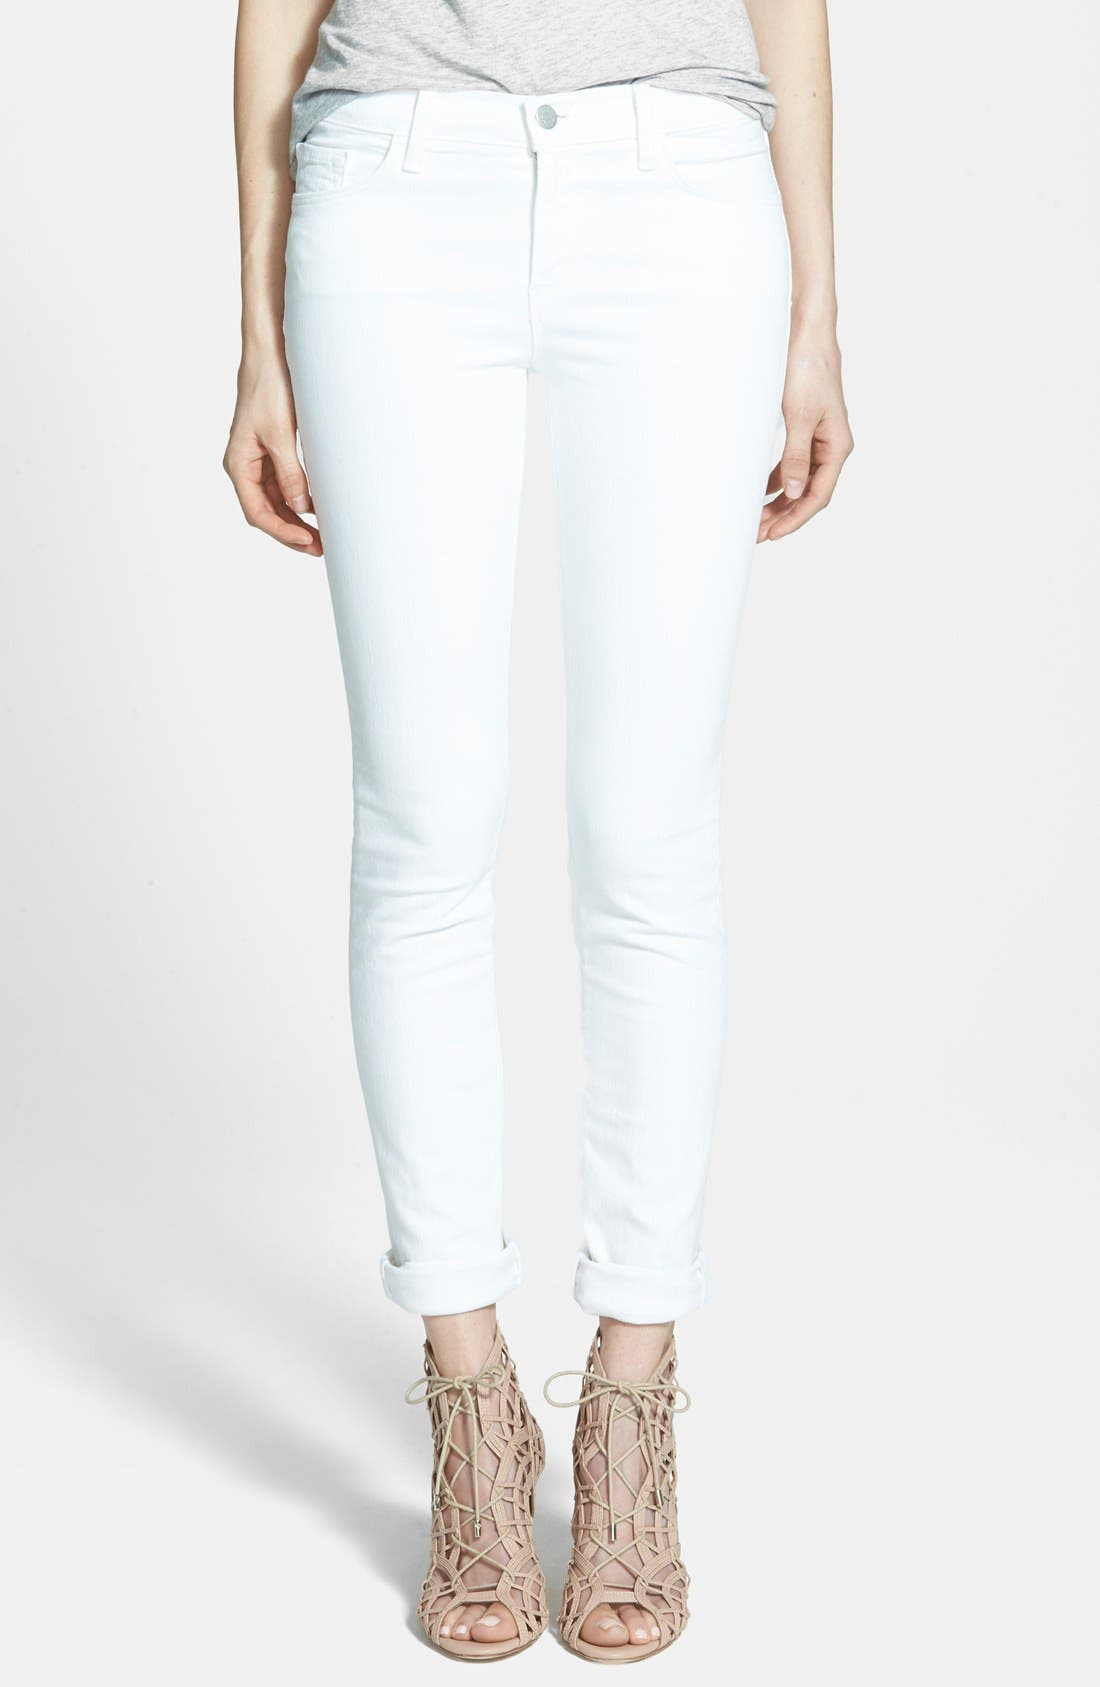 Alternate Image 1 Selected - J Brand '811' Mid-Rise Stovepipe Jeans (Blanc)